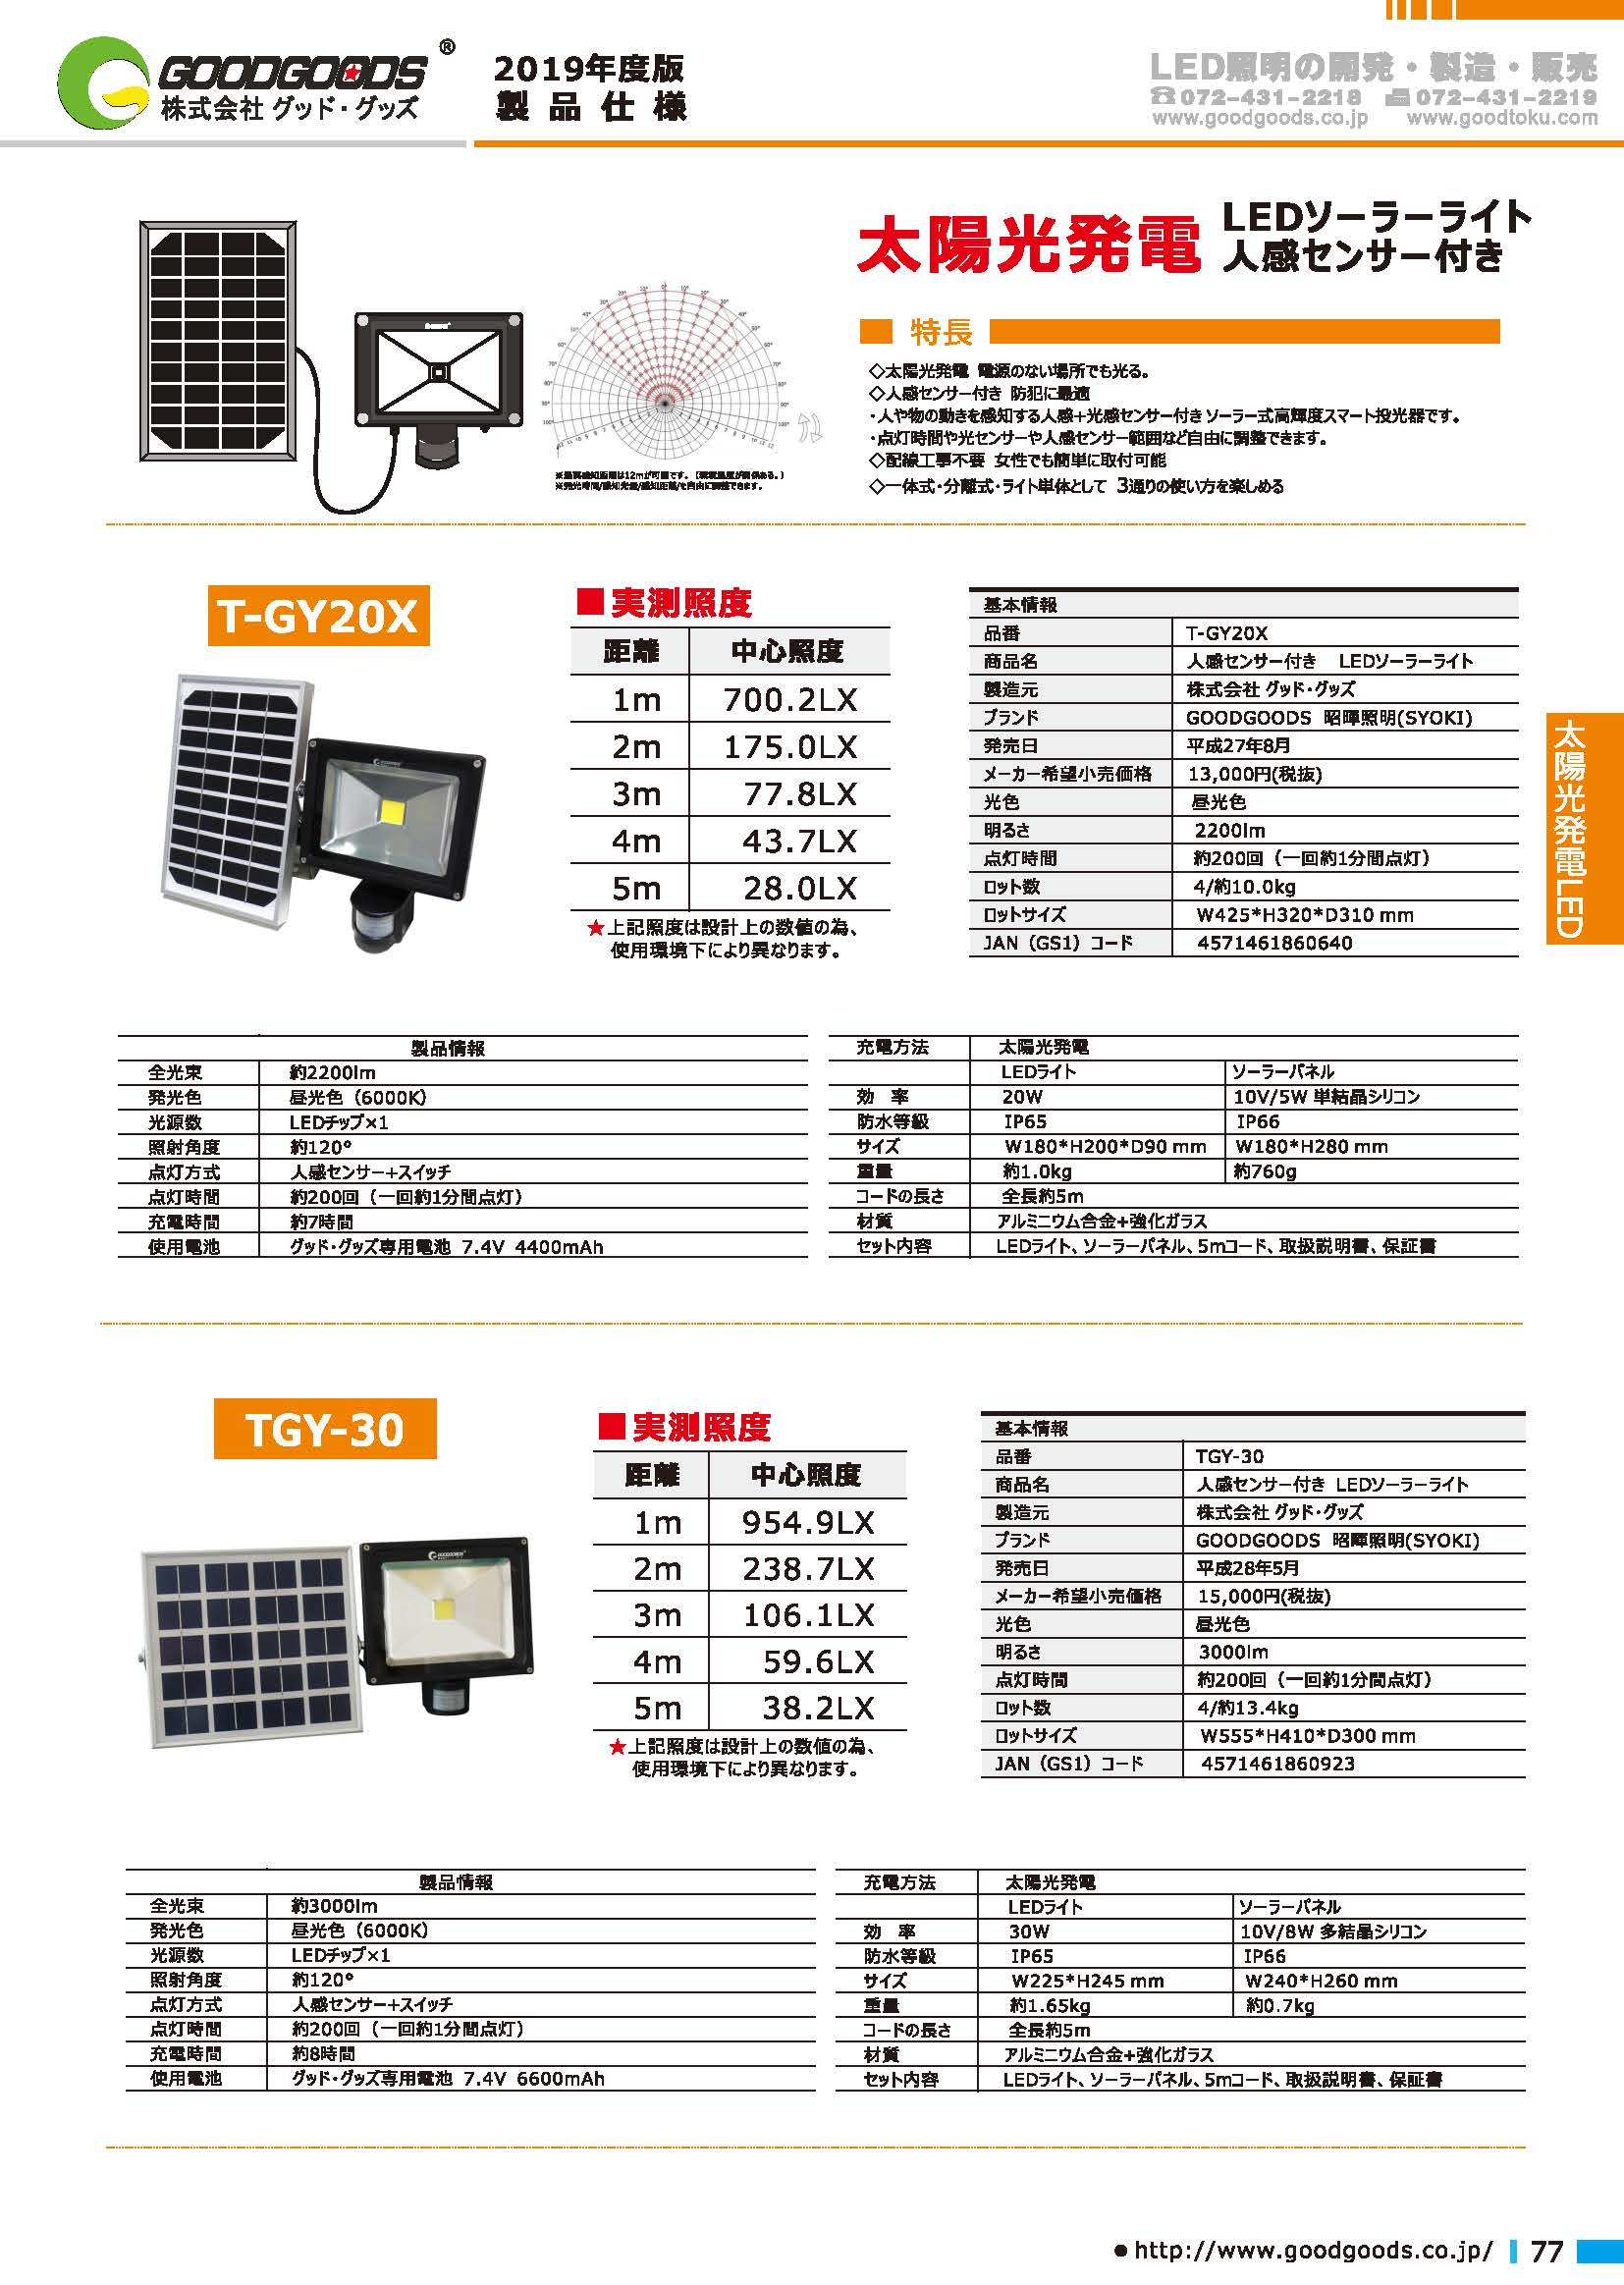 2019catalogue-t-gy20x.jpg